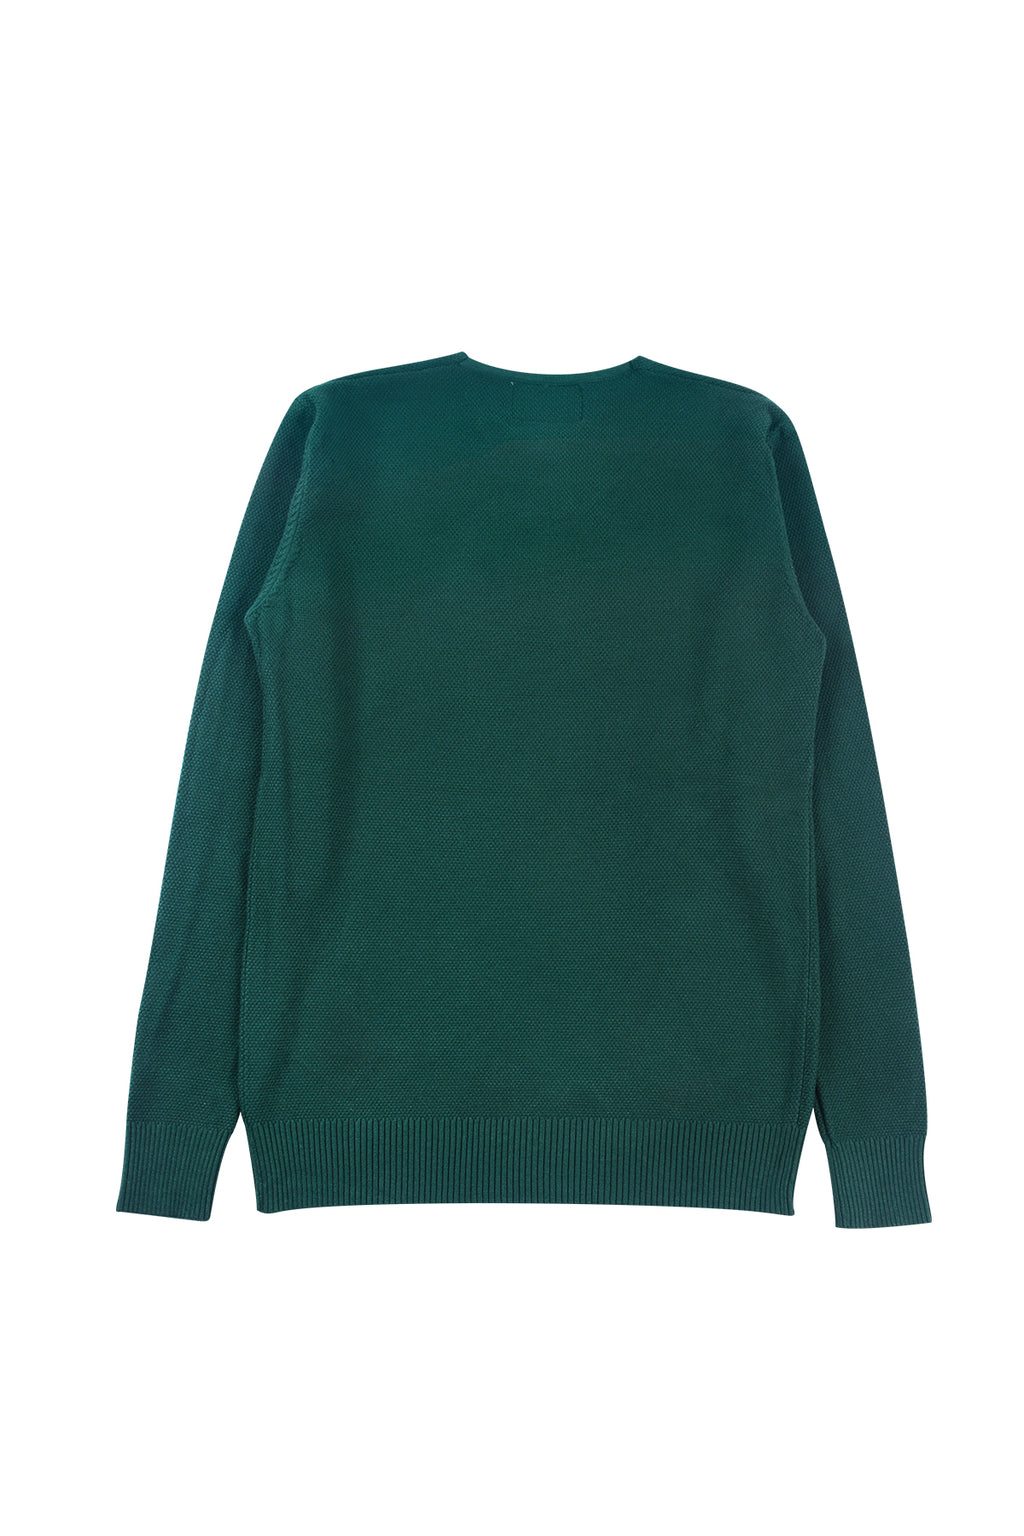 THREE-BUTTON WAFFLE KNIT SWEATER | GREEN - 185